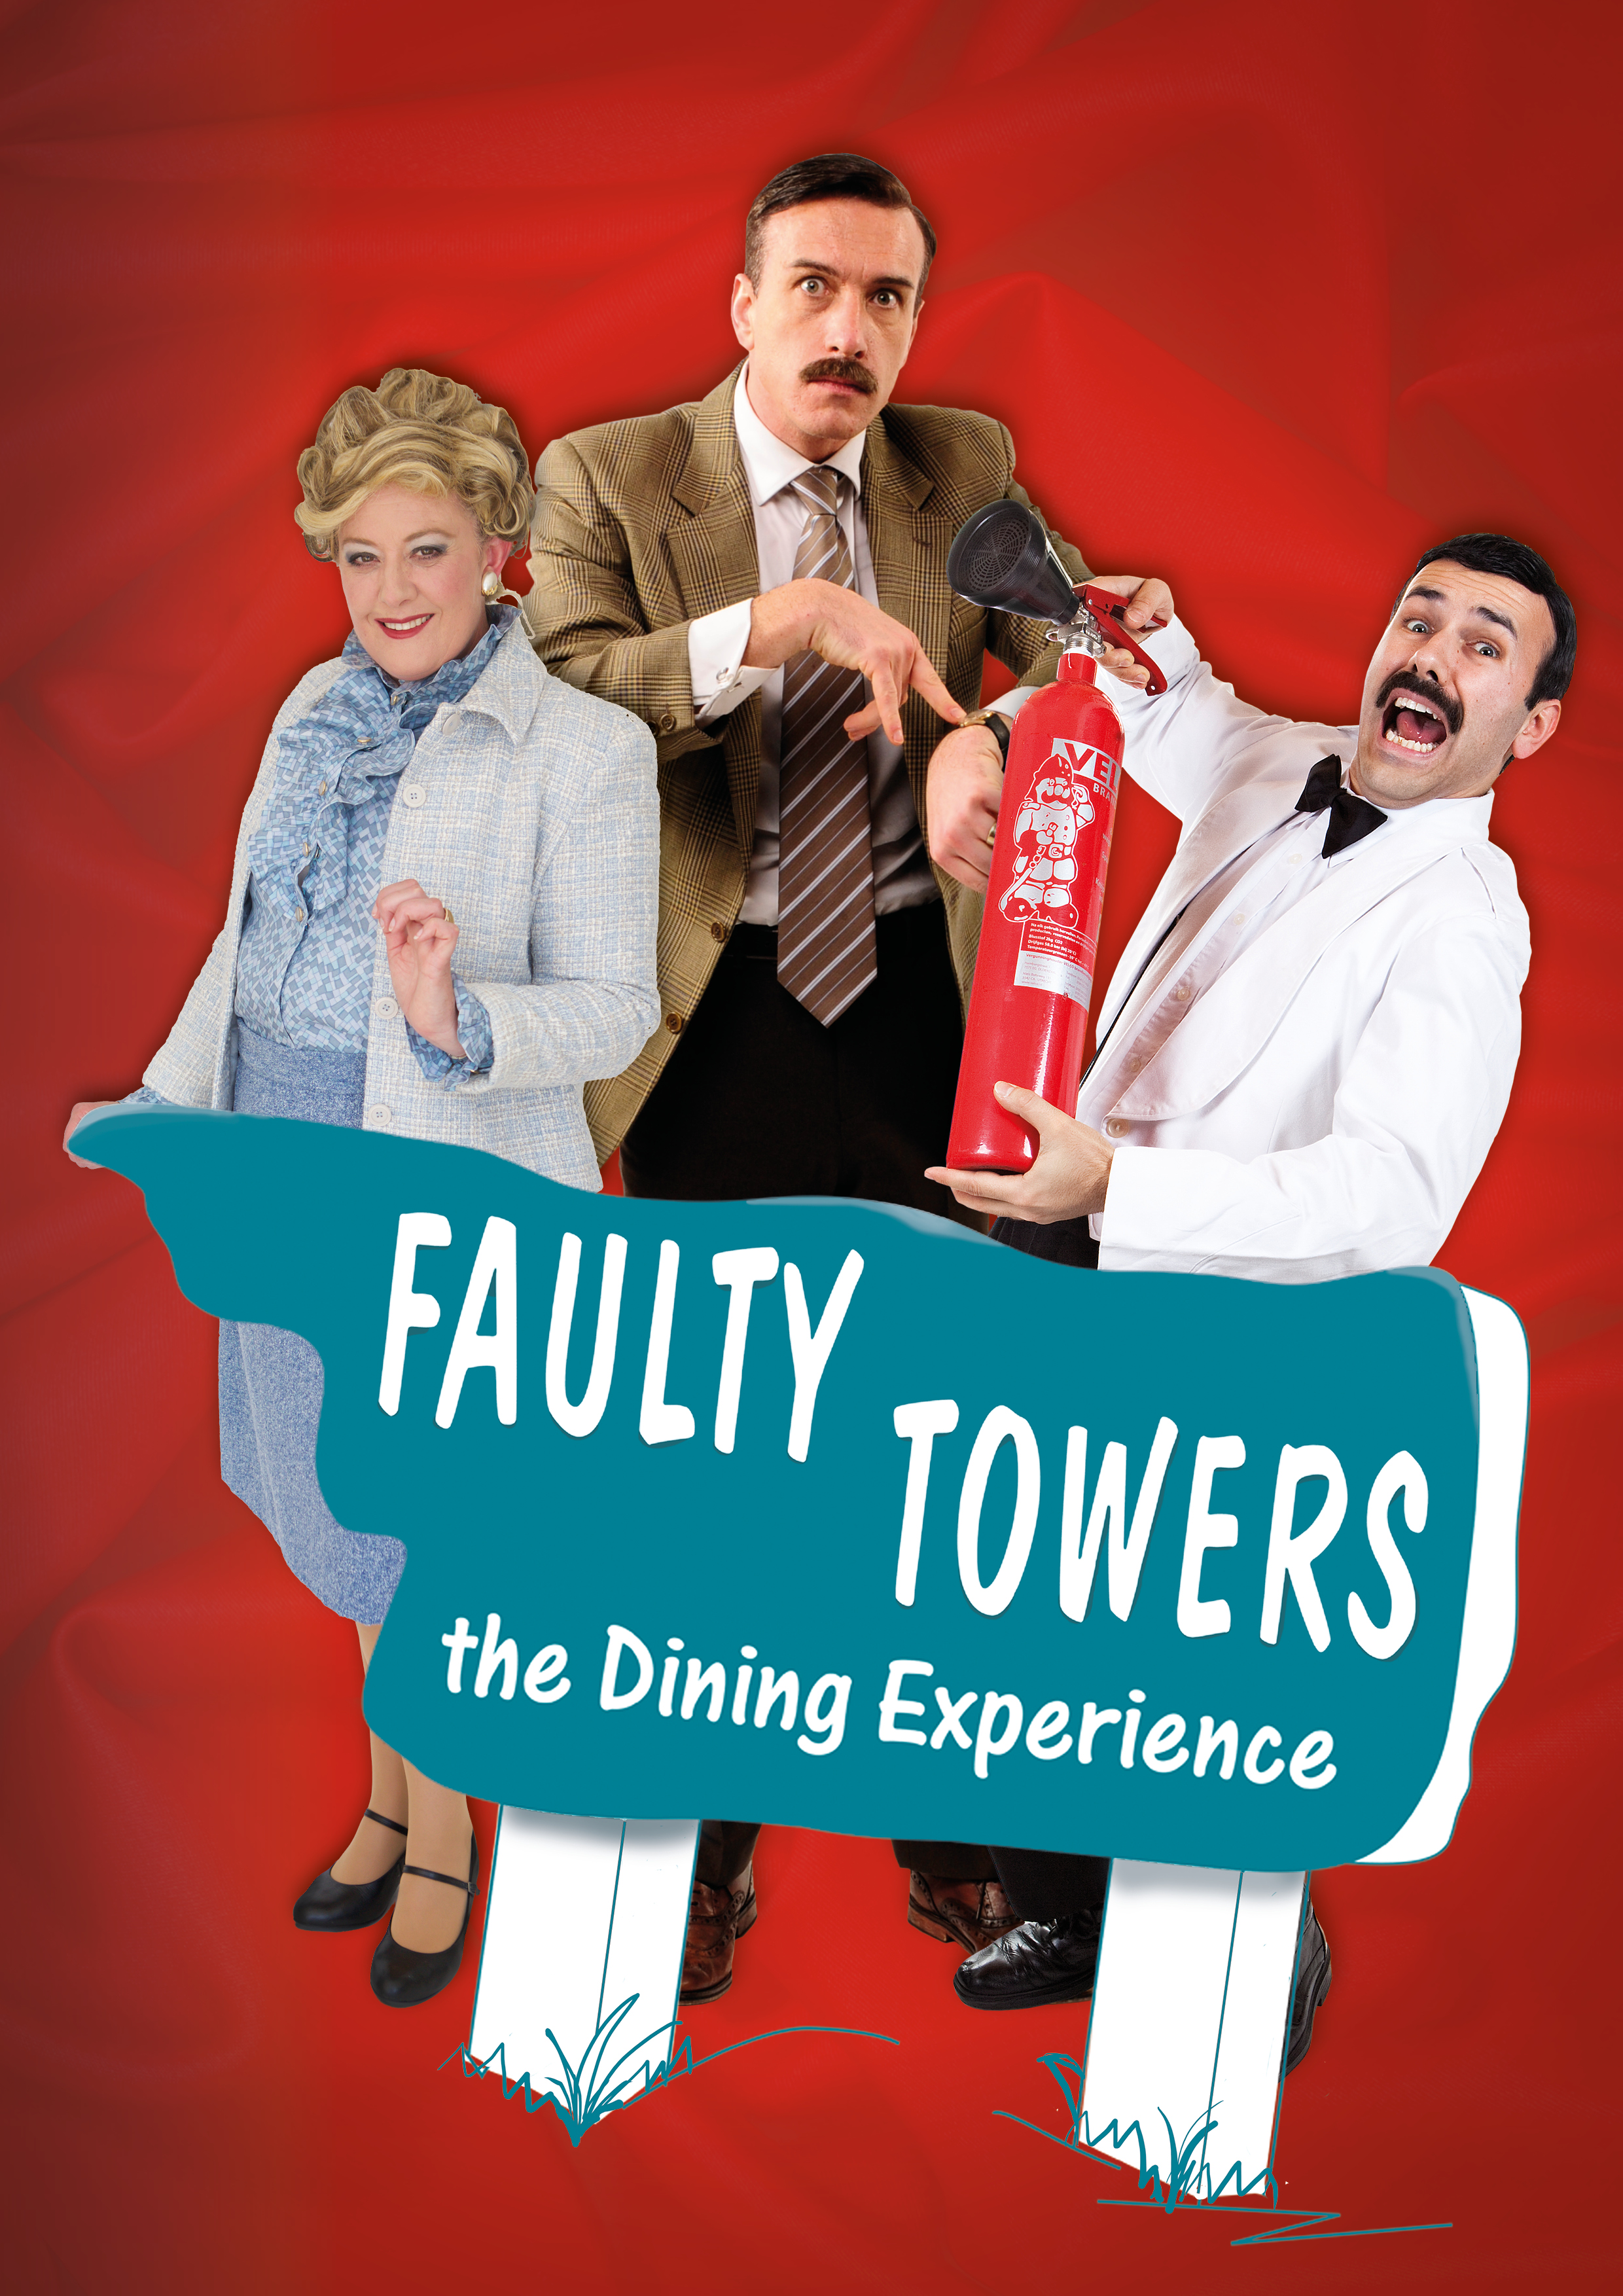 cast FaultyTowers_Monique-Luke-Anthony_red branded